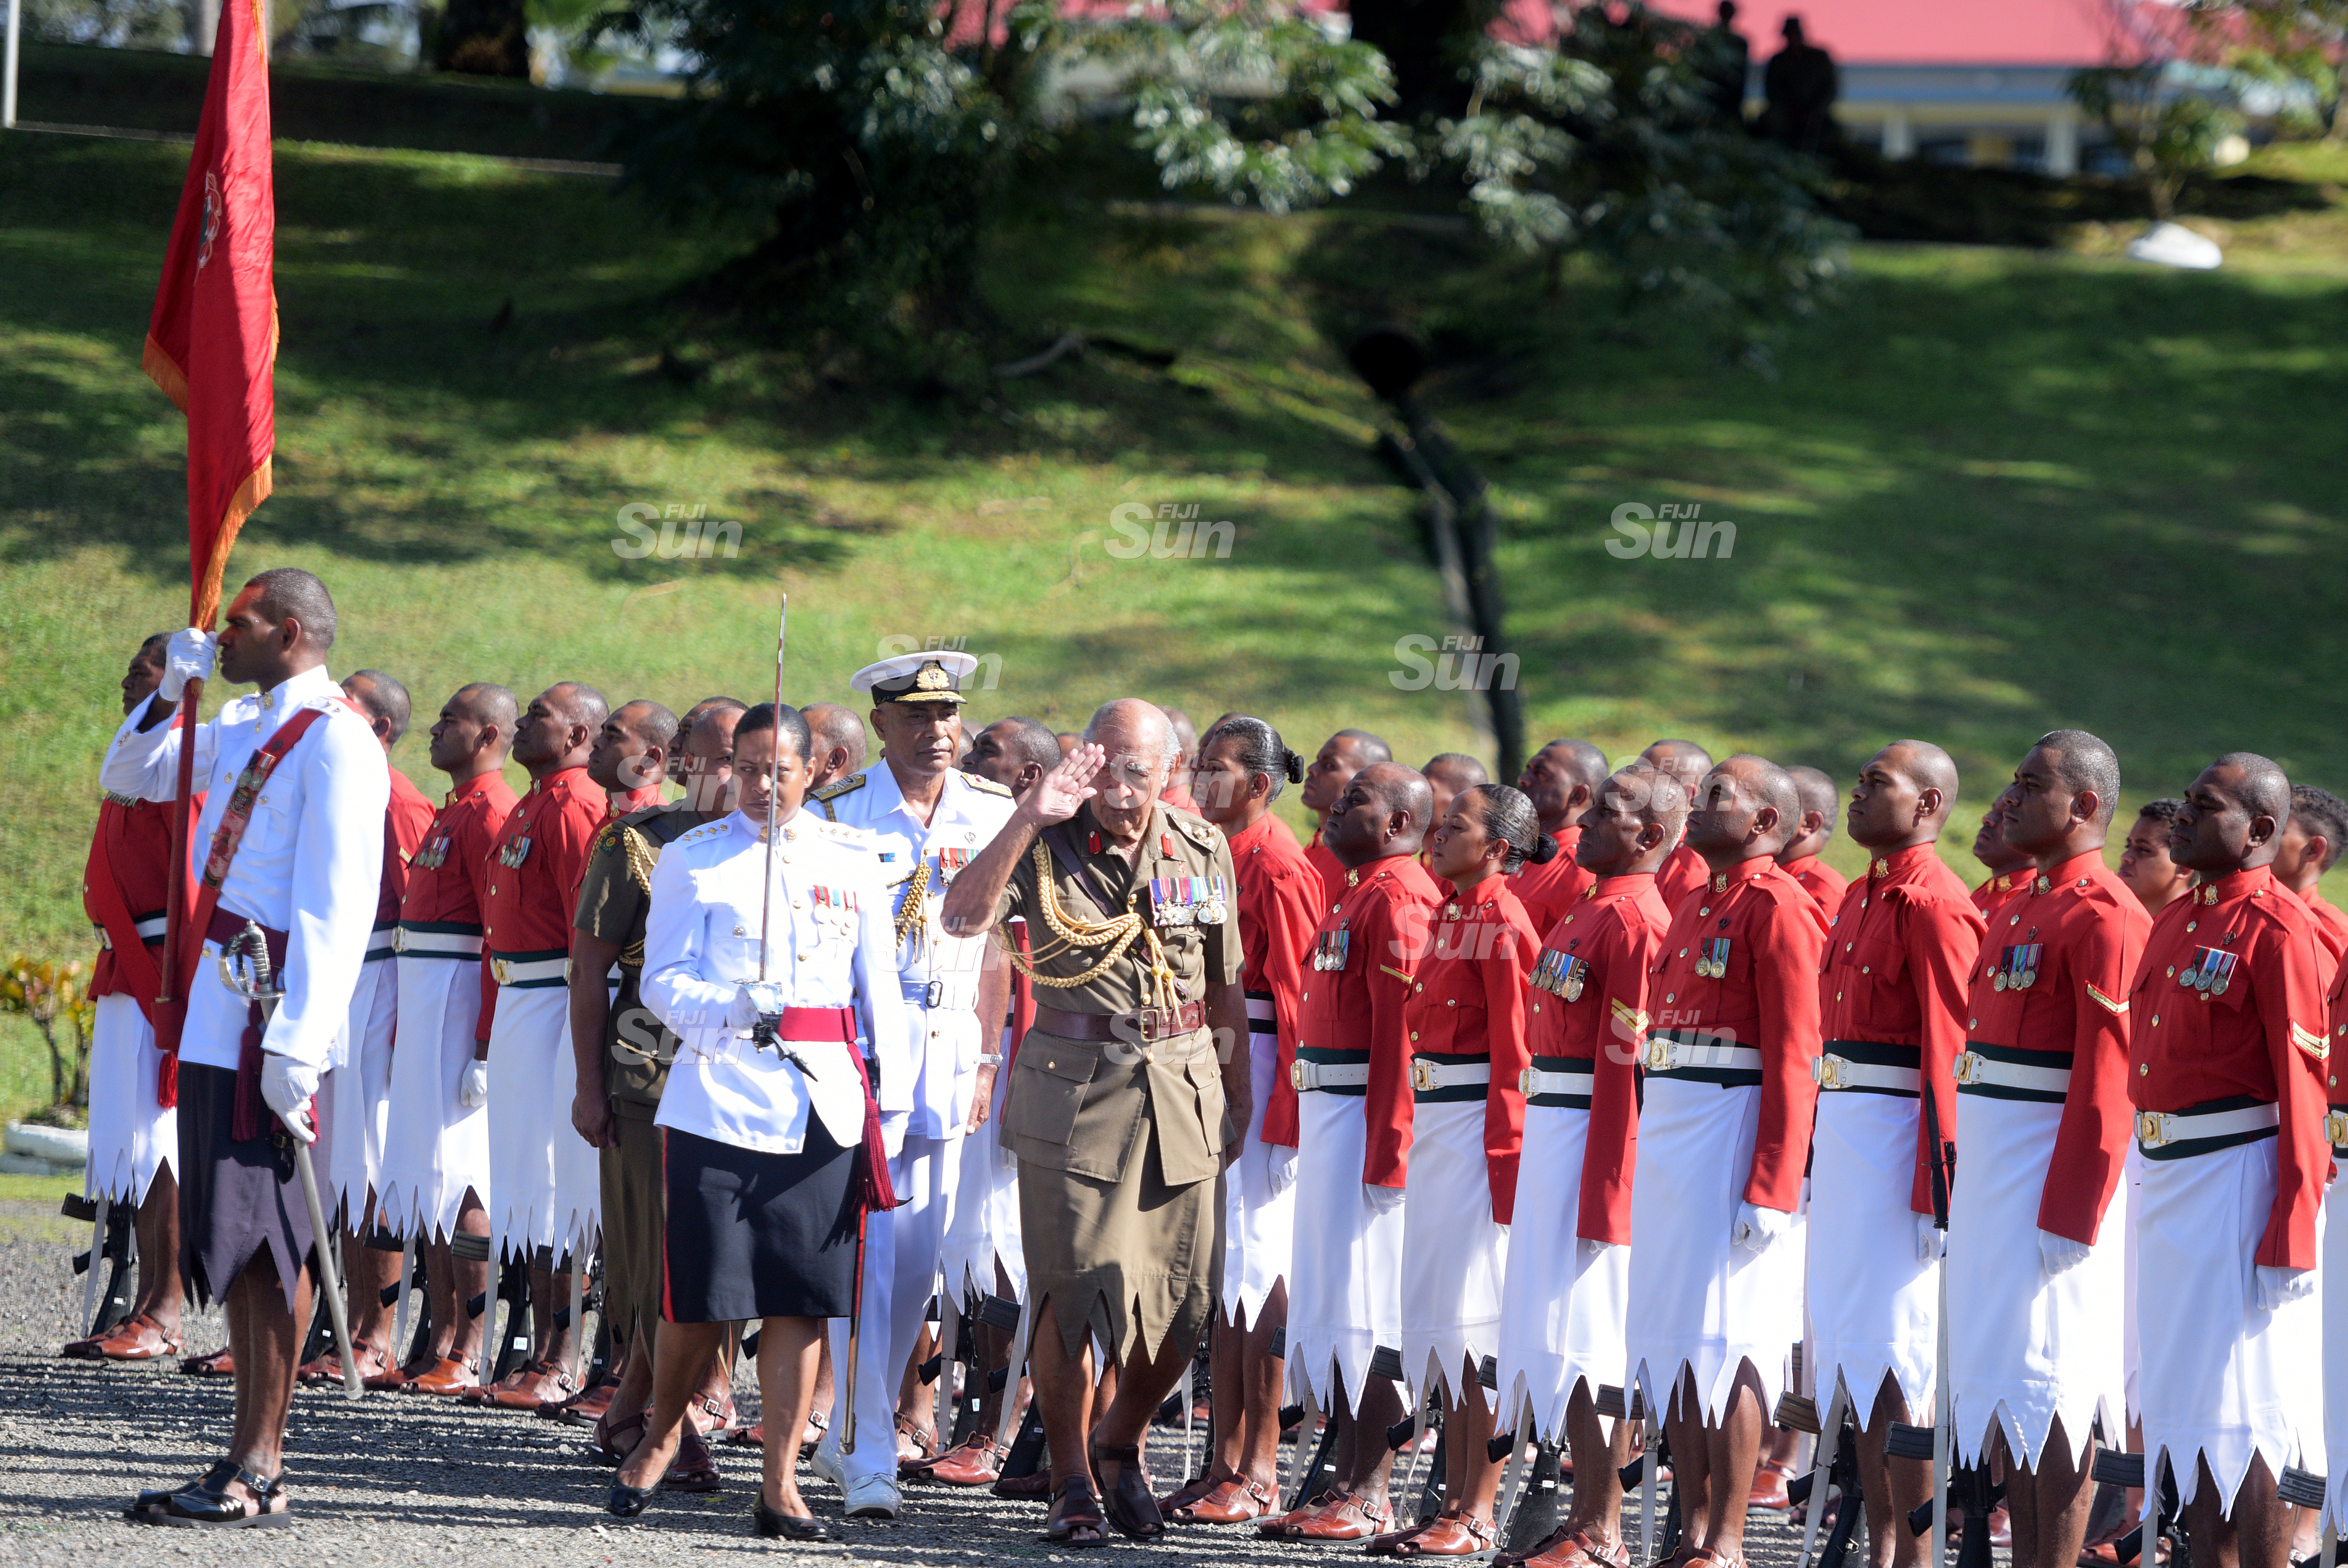 Brigadier General (Retired) Ratu Epeli Nailatikau salutes to the Colours as he inspected the 50 men regimental guard of honour at Queen Elizabeth Barracks during inauguration of the Colonel of the Regiment on July 21, 2020. Photo: Ronald Kumar.